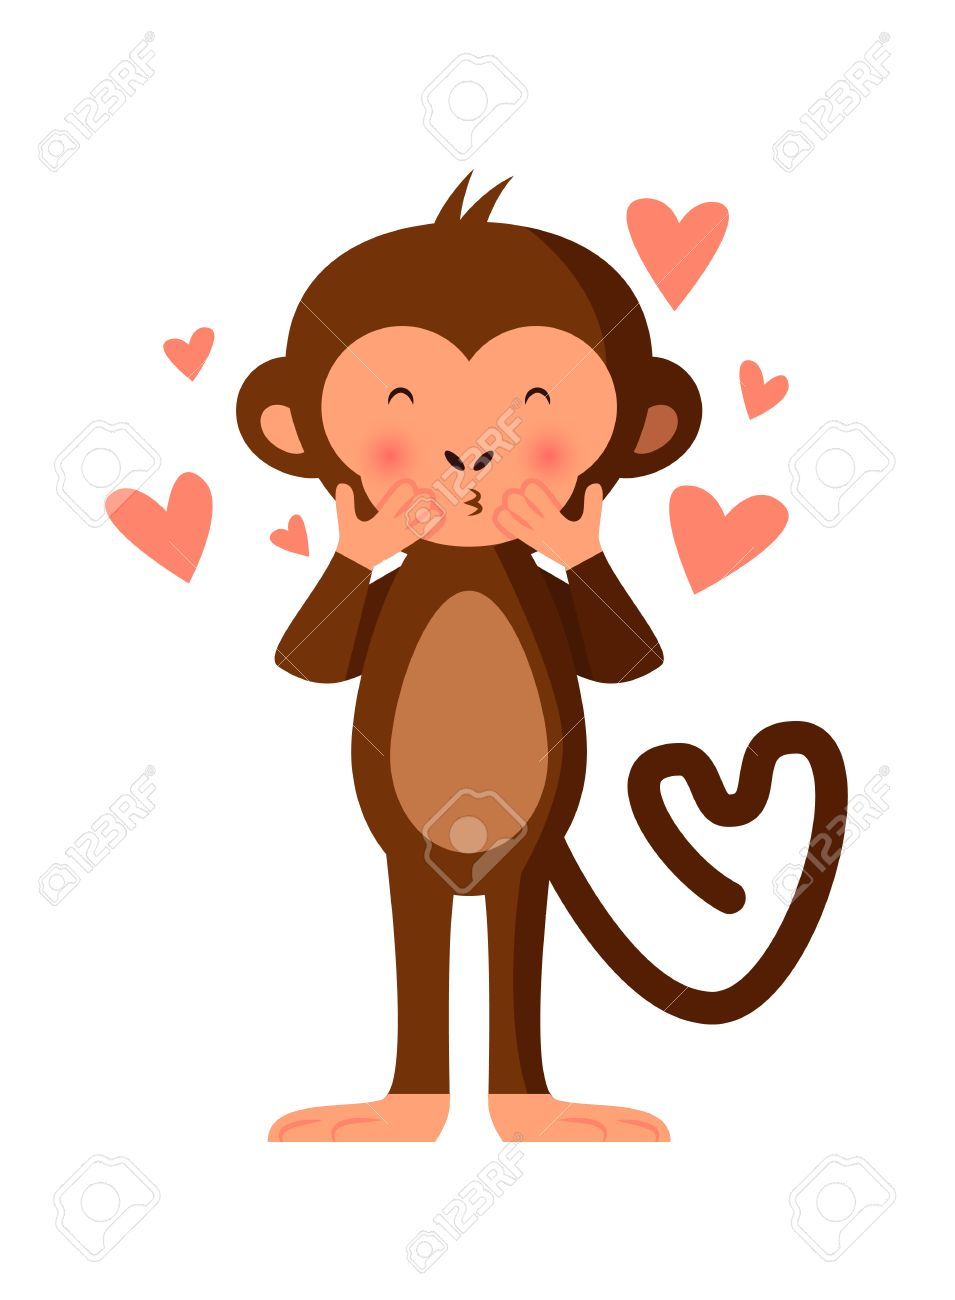 Cute Monkey Blowing Kisses Romantic Vector Illustration Royalty